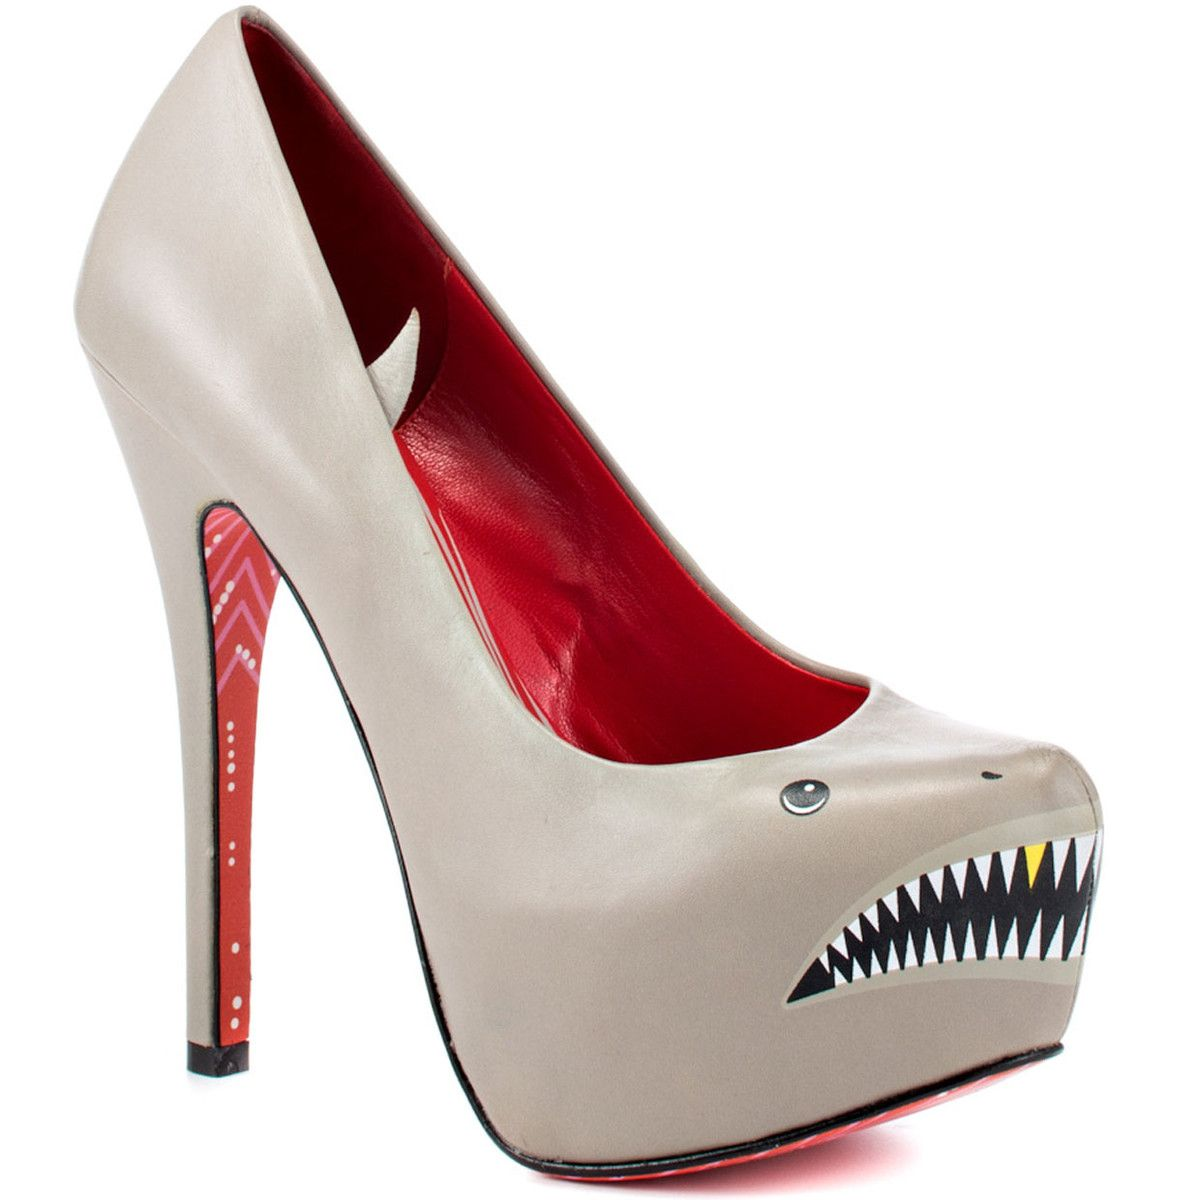 72280dd1157 These Sharkie Heels are leather pumps embellished with shark-fin ...